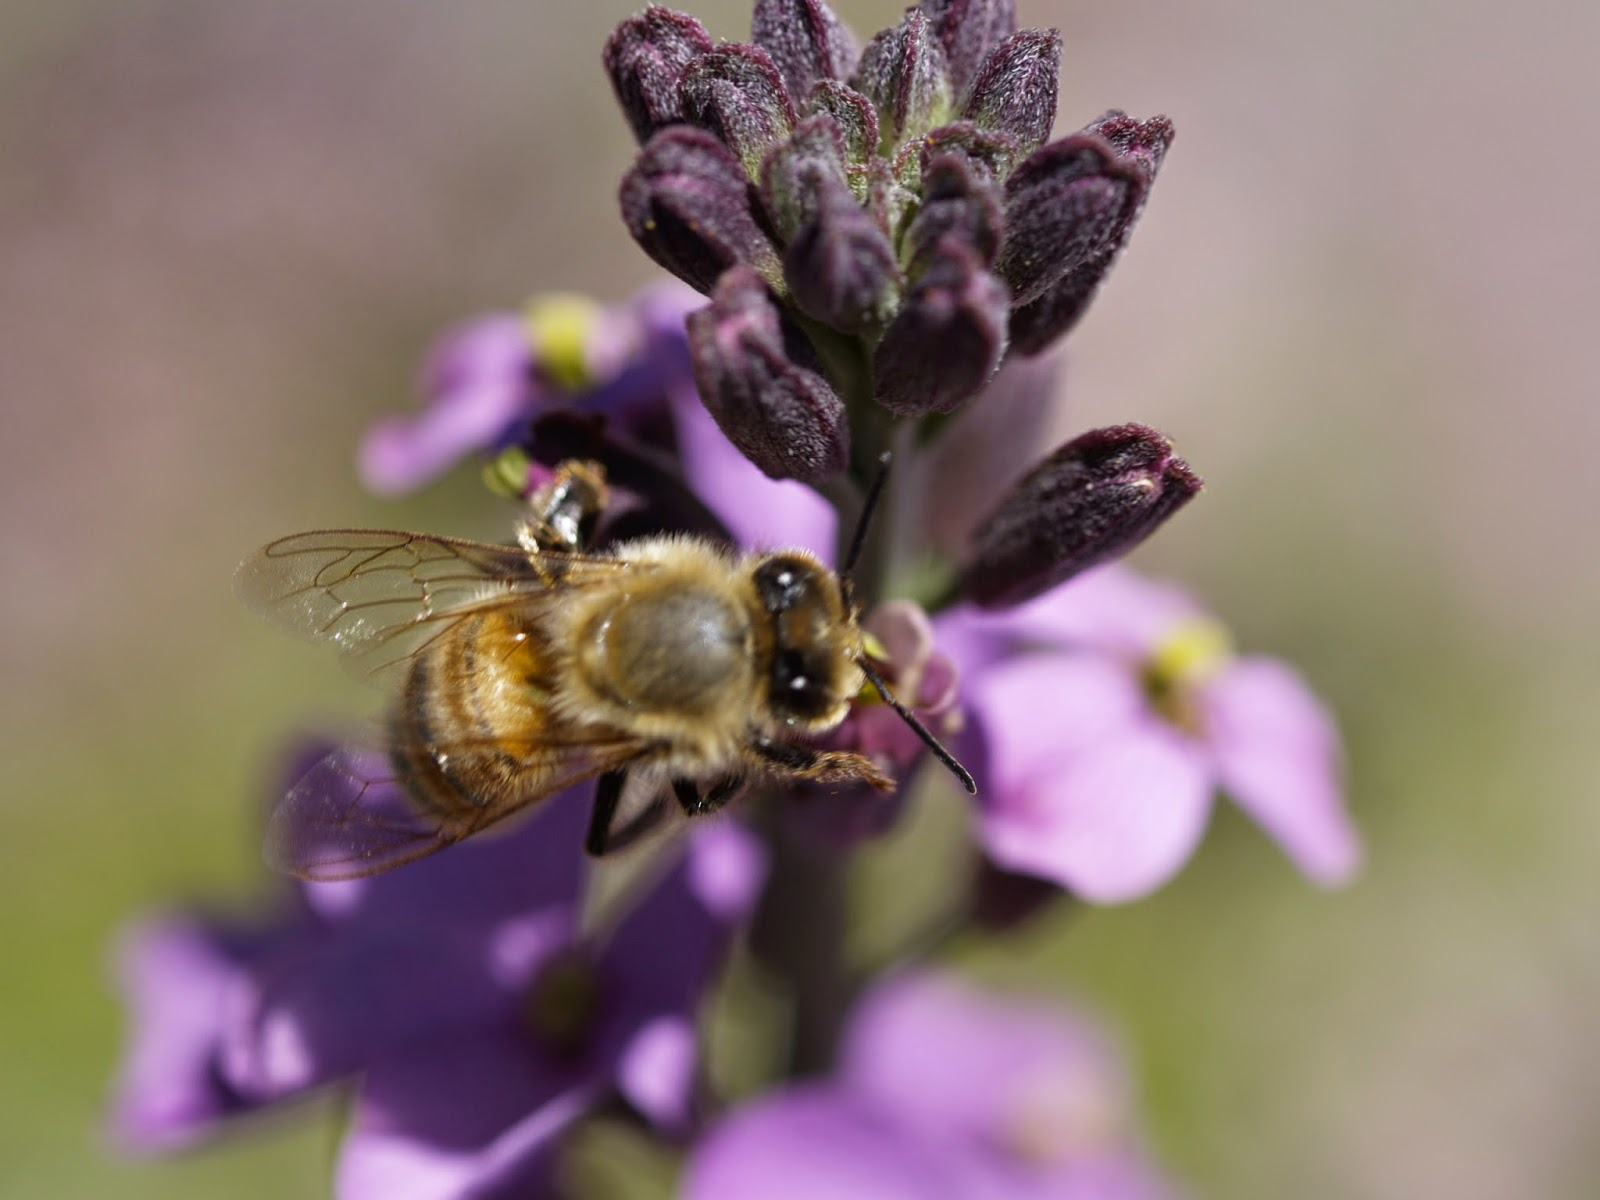 bee on a flower eating pollen